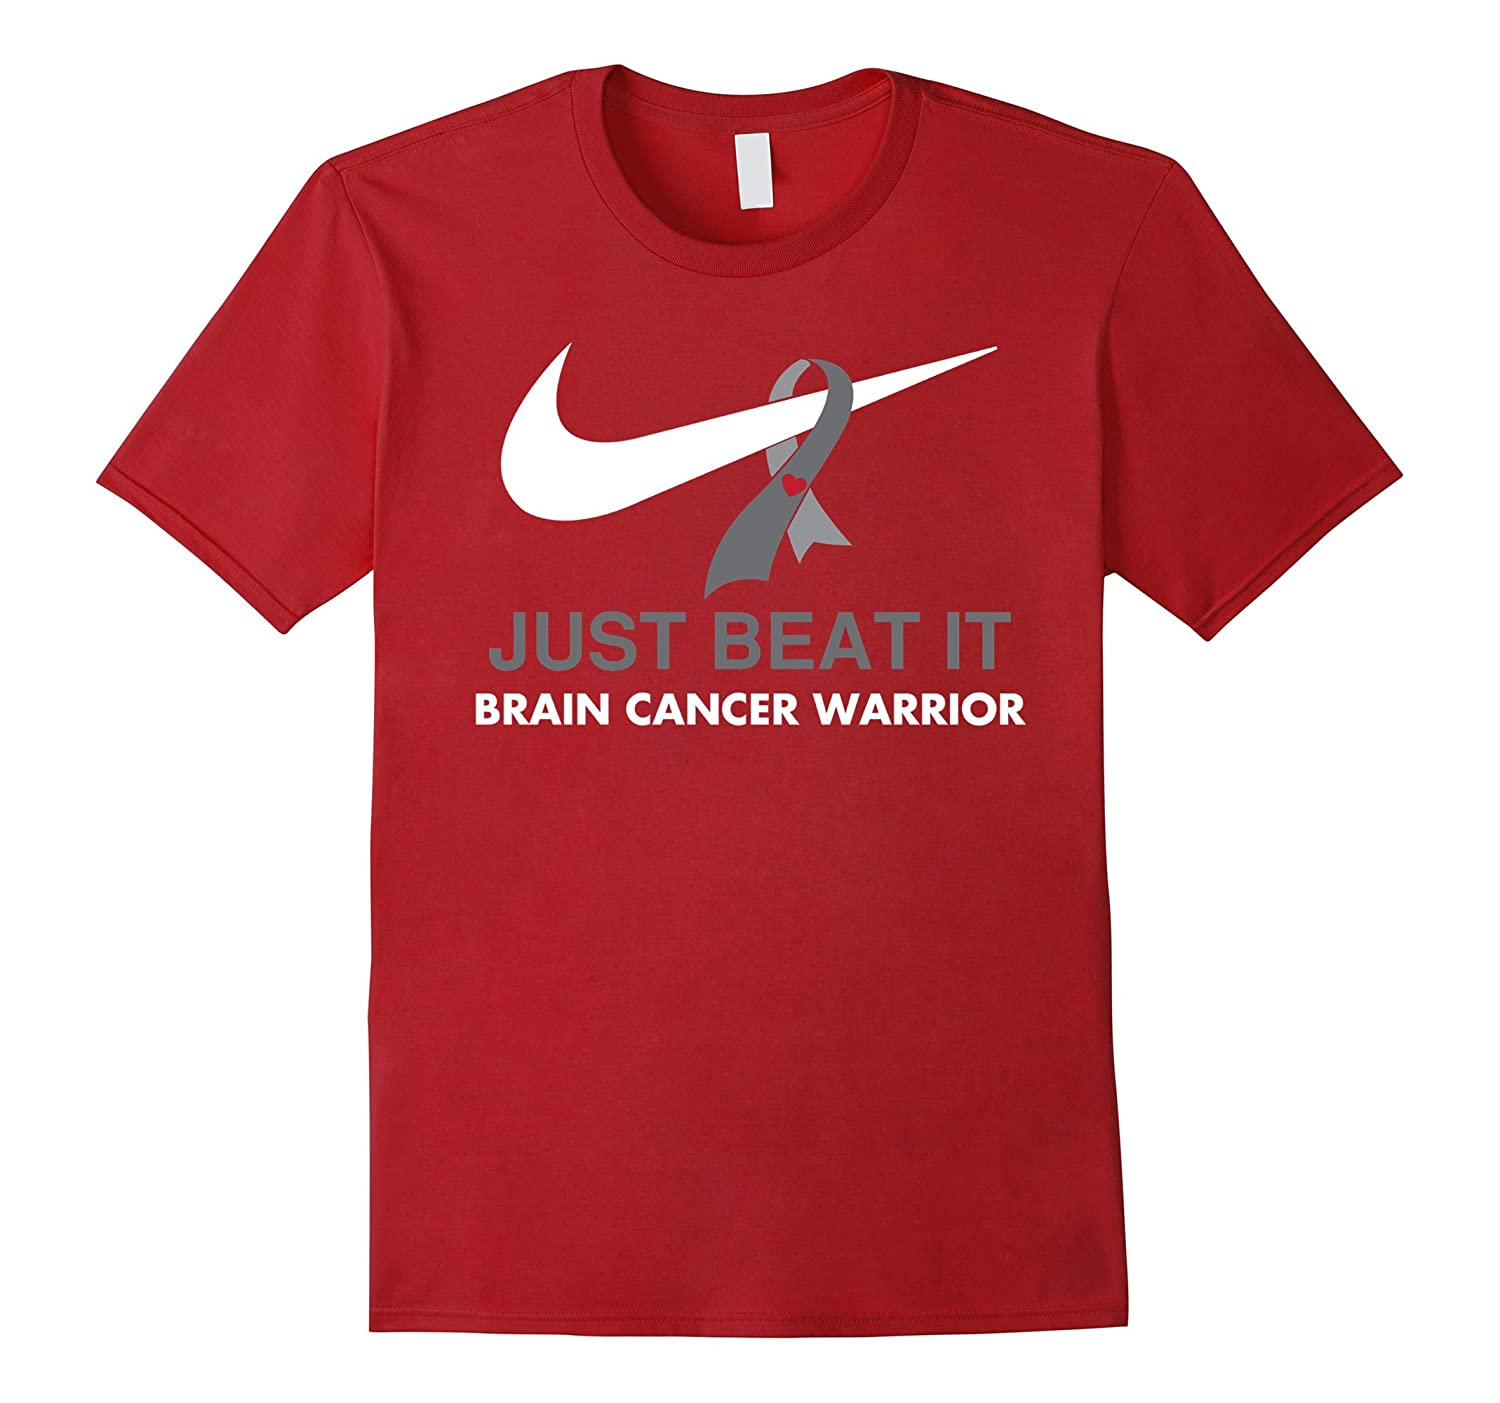 Just Beat It Brain Cancer Warrior Tshirts-Vaci